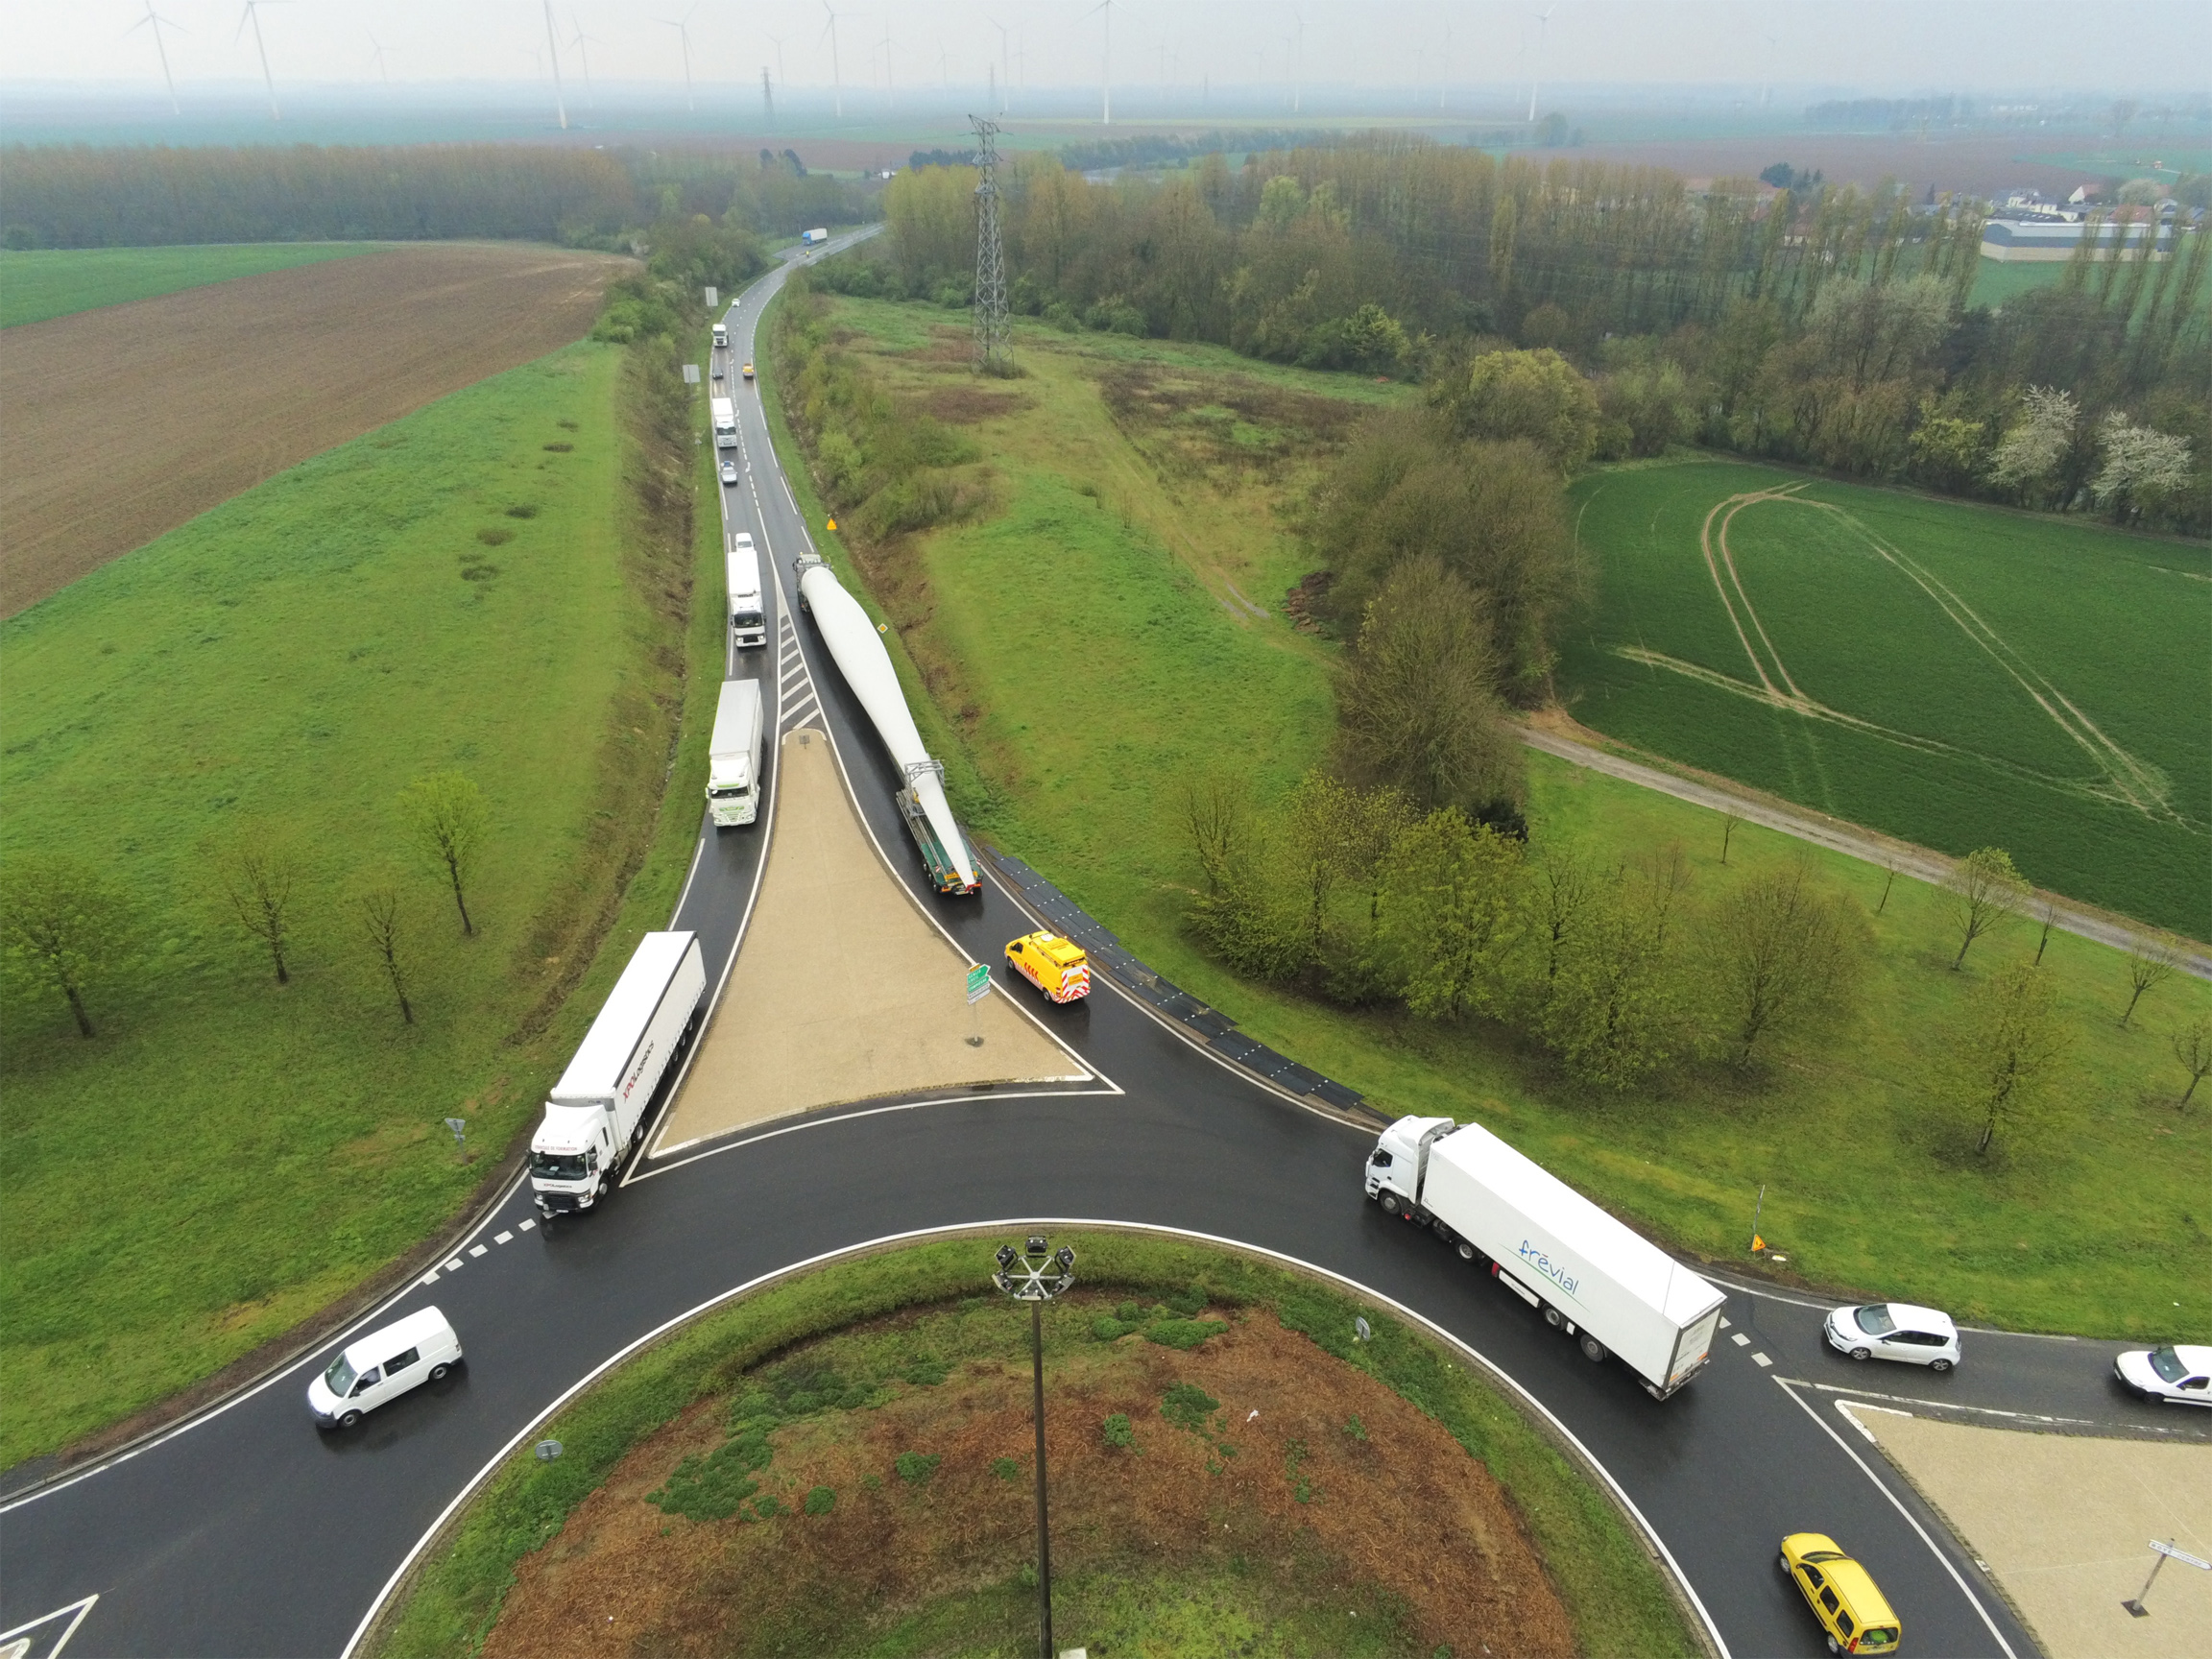 pale-eolienne-transport-beudservices3